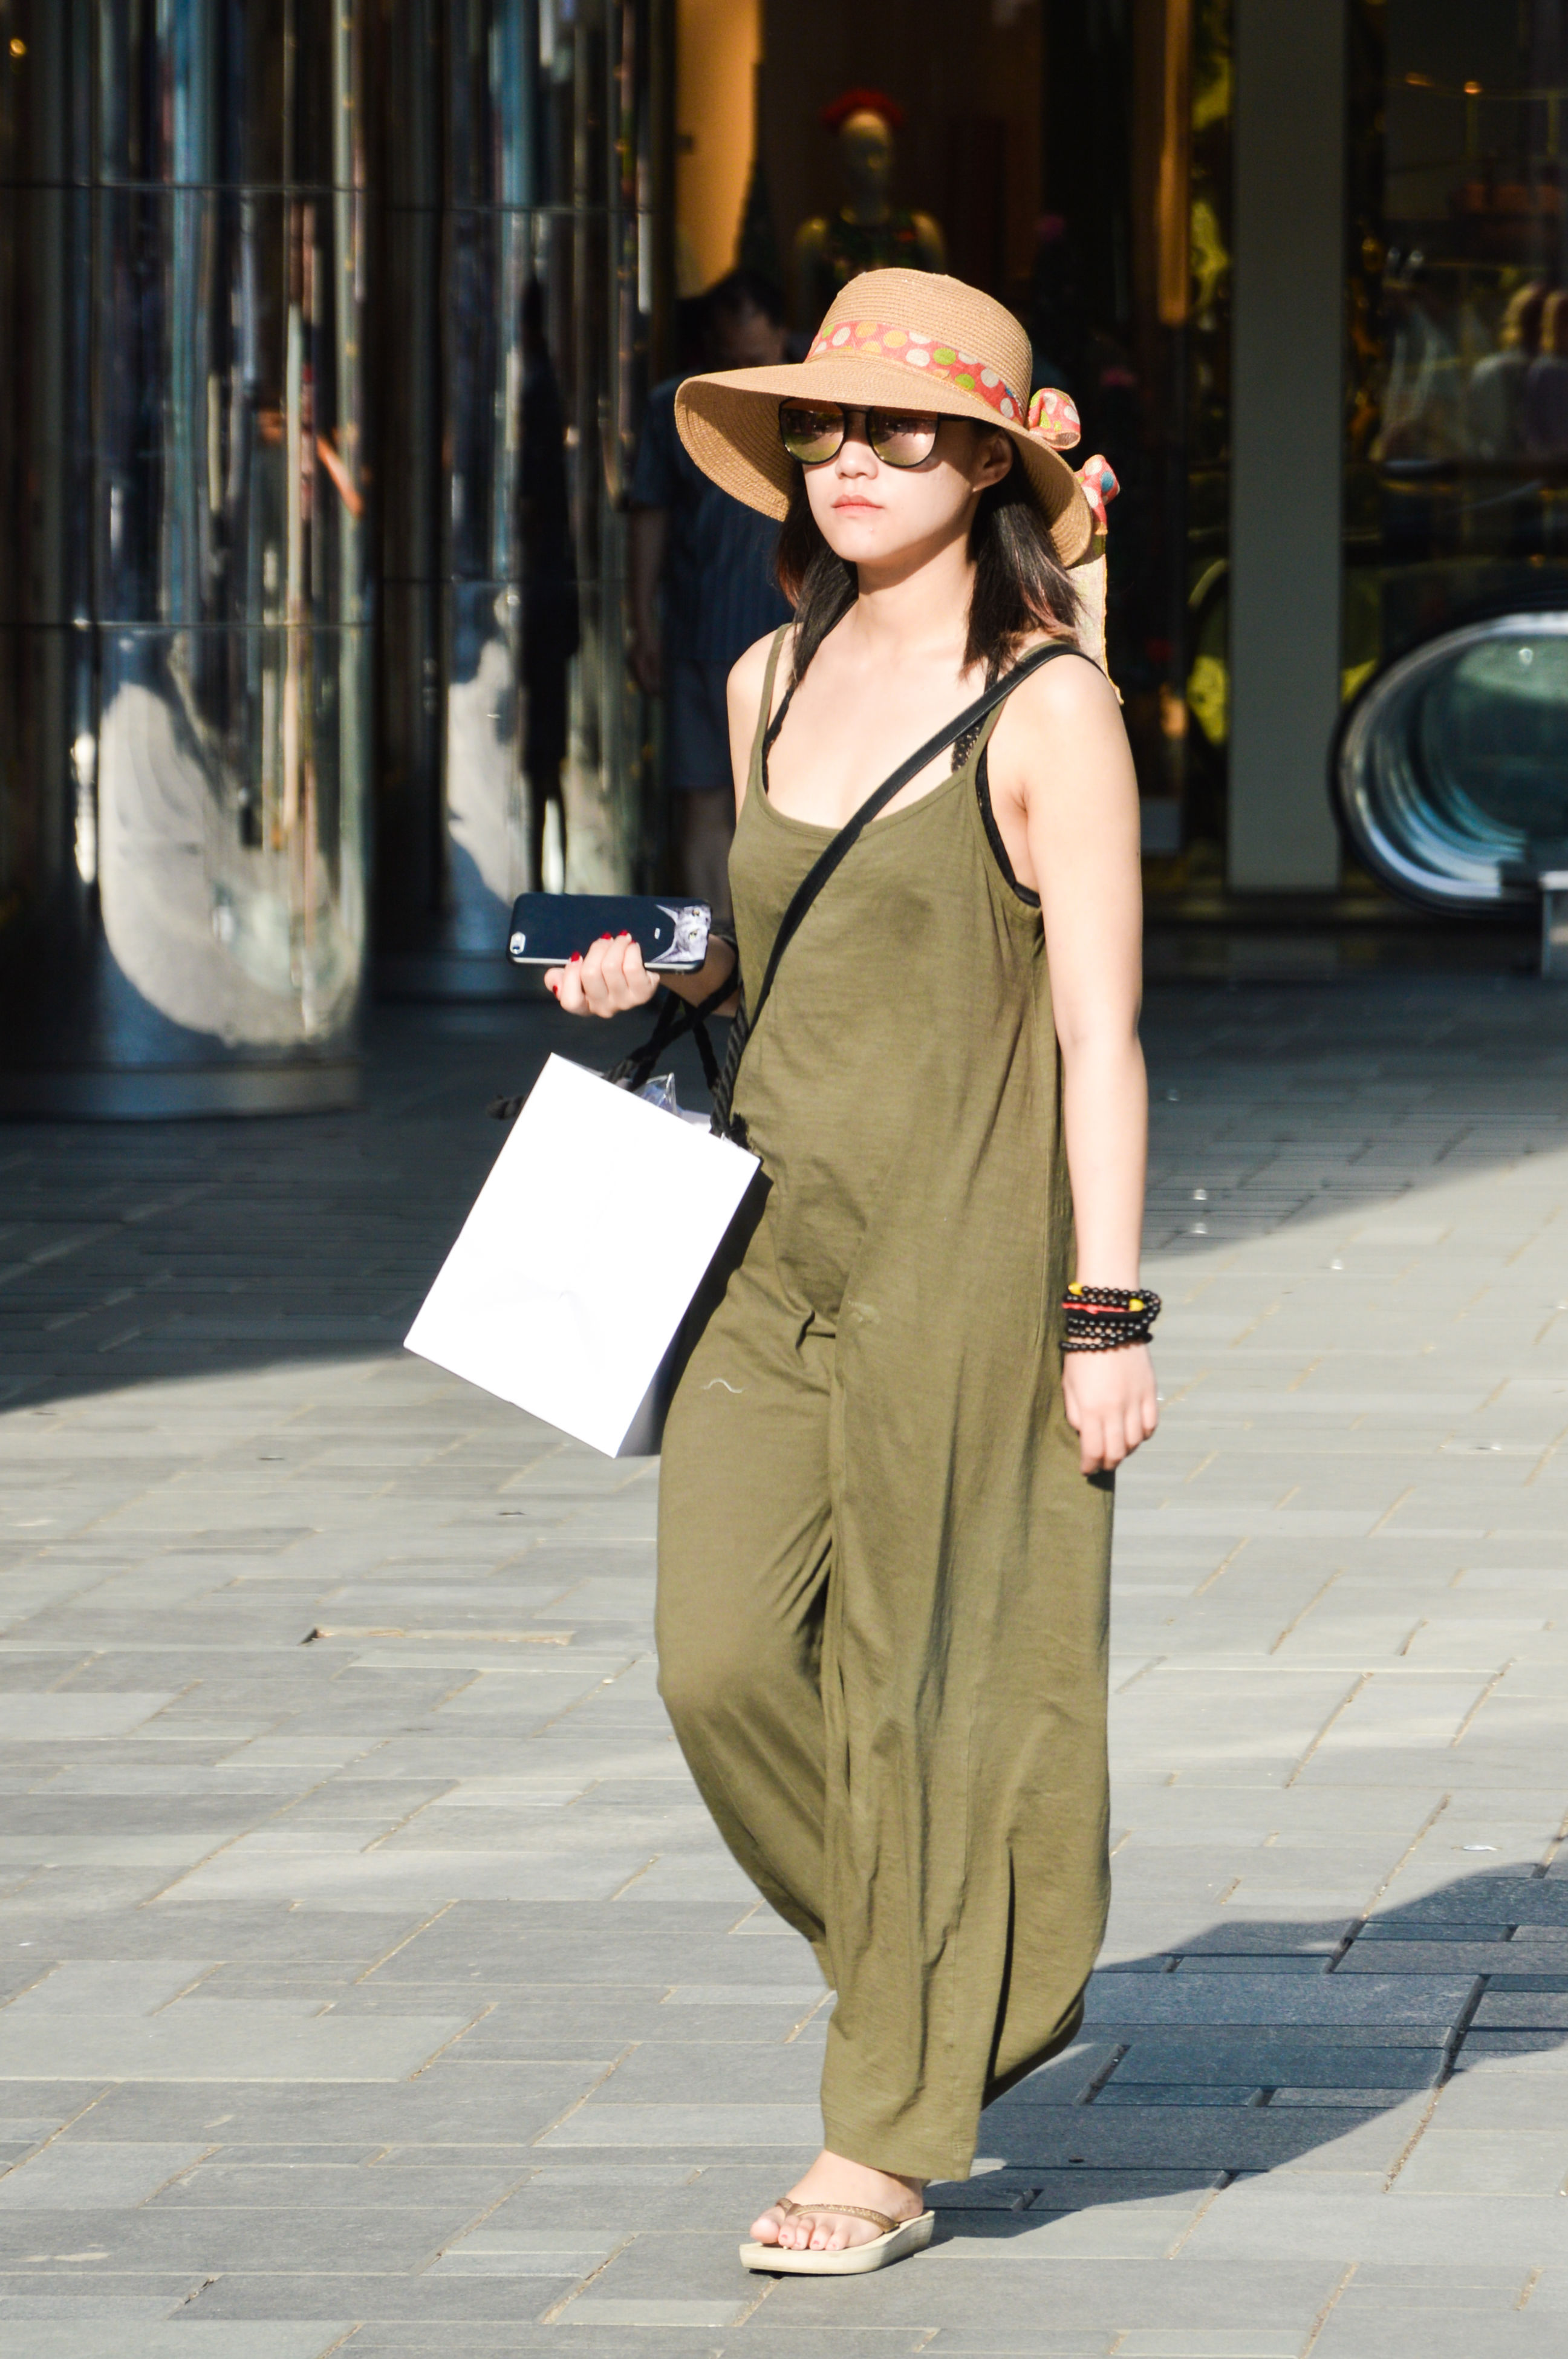 hat, one person, full length, real people, lifestyles, fashion, outdoors, standing, leisure activity, sun hat, day, women, young women, holding, young adult, purse, beautiful woman, looking at camera, portrait